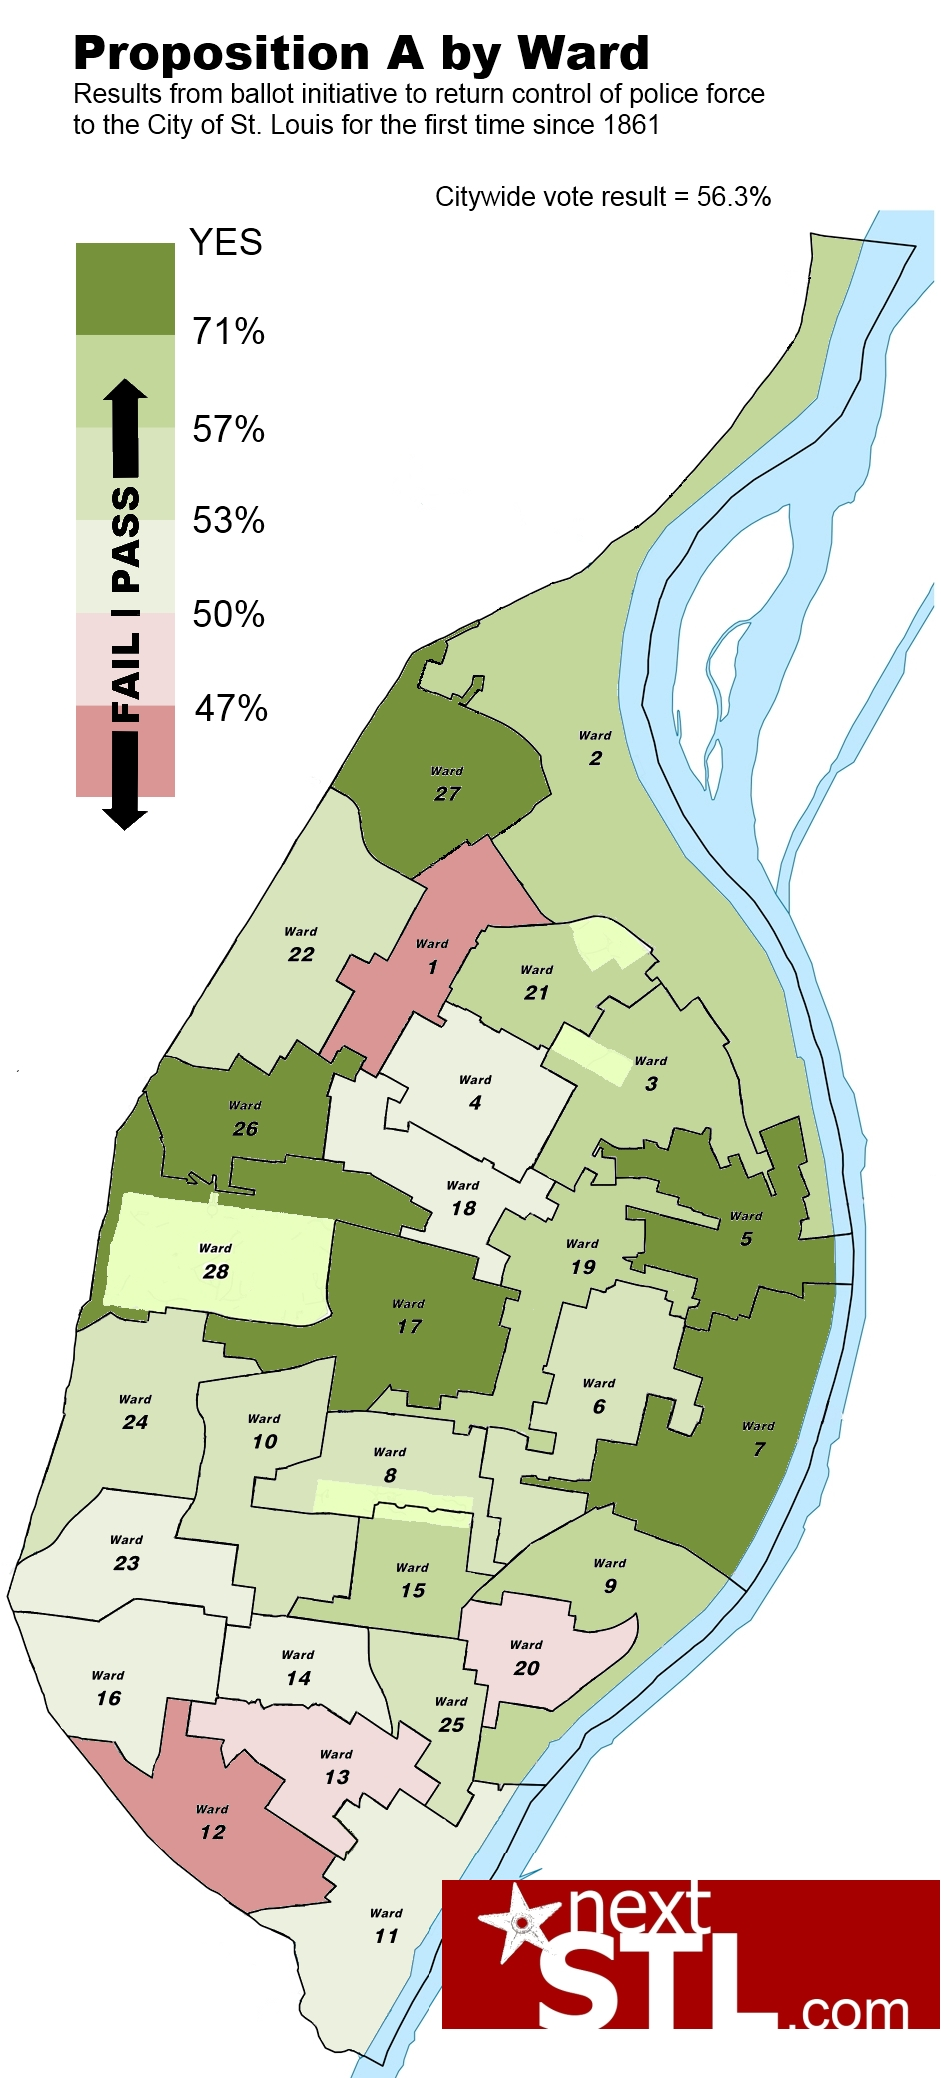 Understanding St. Louis: Proposition A by Ward